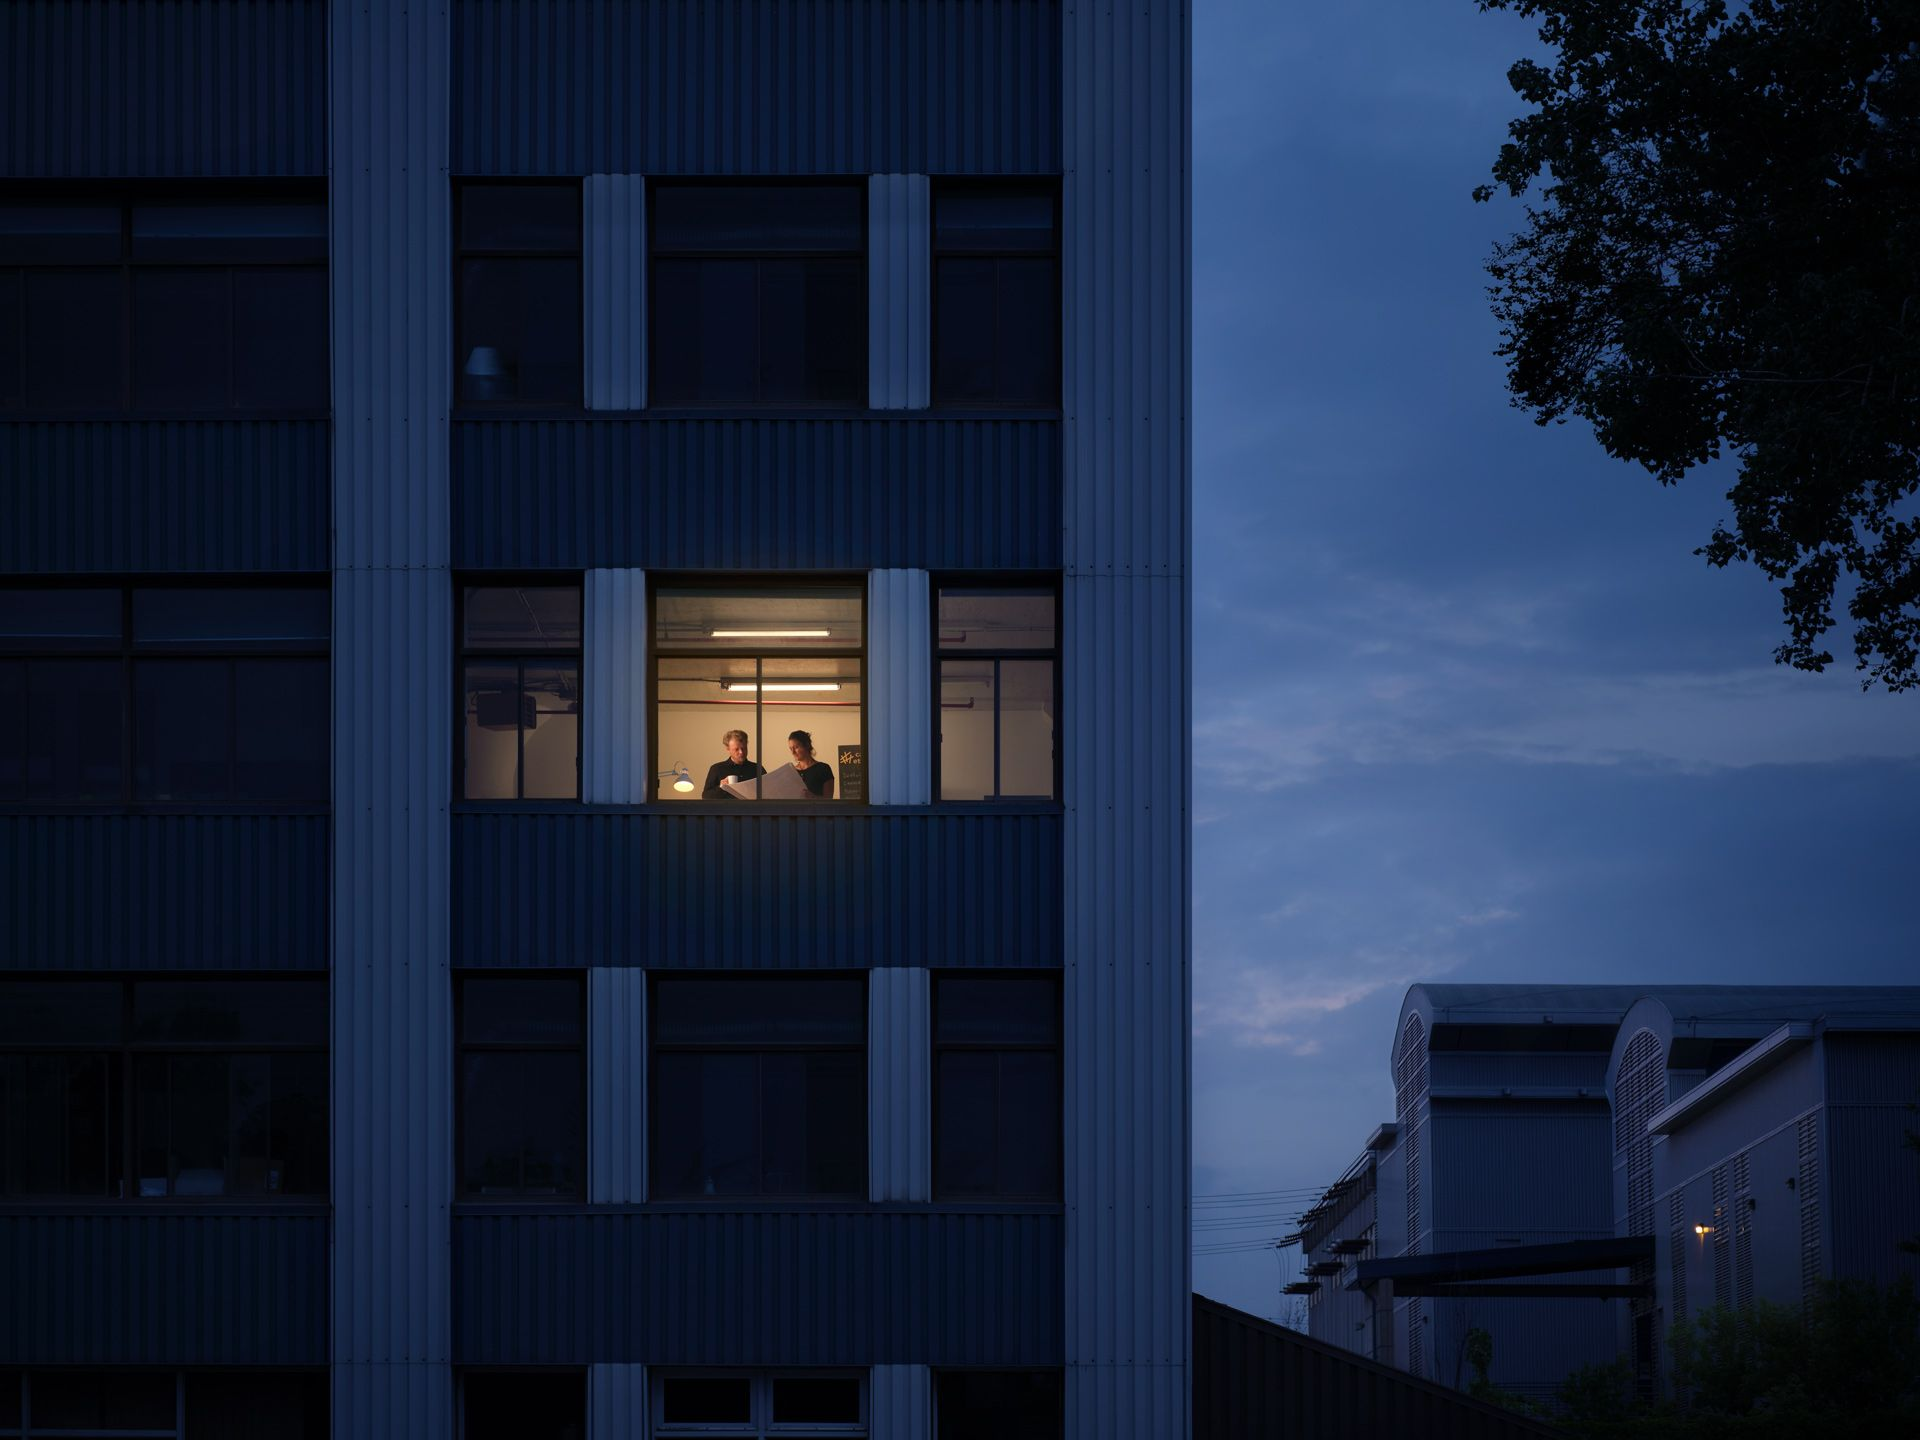 view inside Castor headquarters at night with two people working inside photographed by Simon Duhamel for PME MTL in collaboration with K72